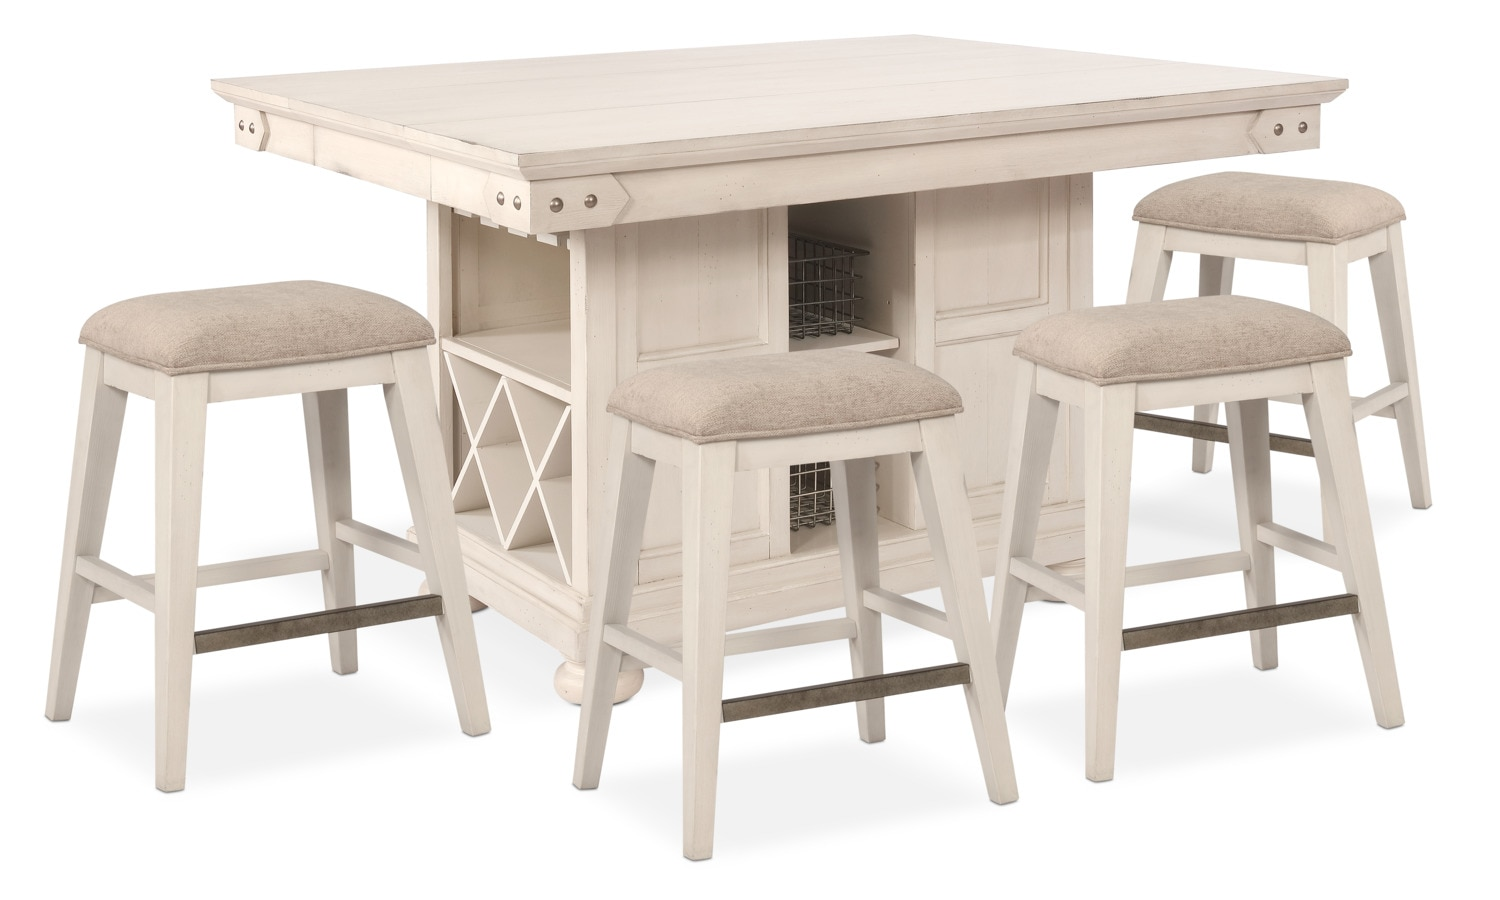 Table And Bar Stools New Haven Counter Height Kitchen Island And 4 Backless Stools